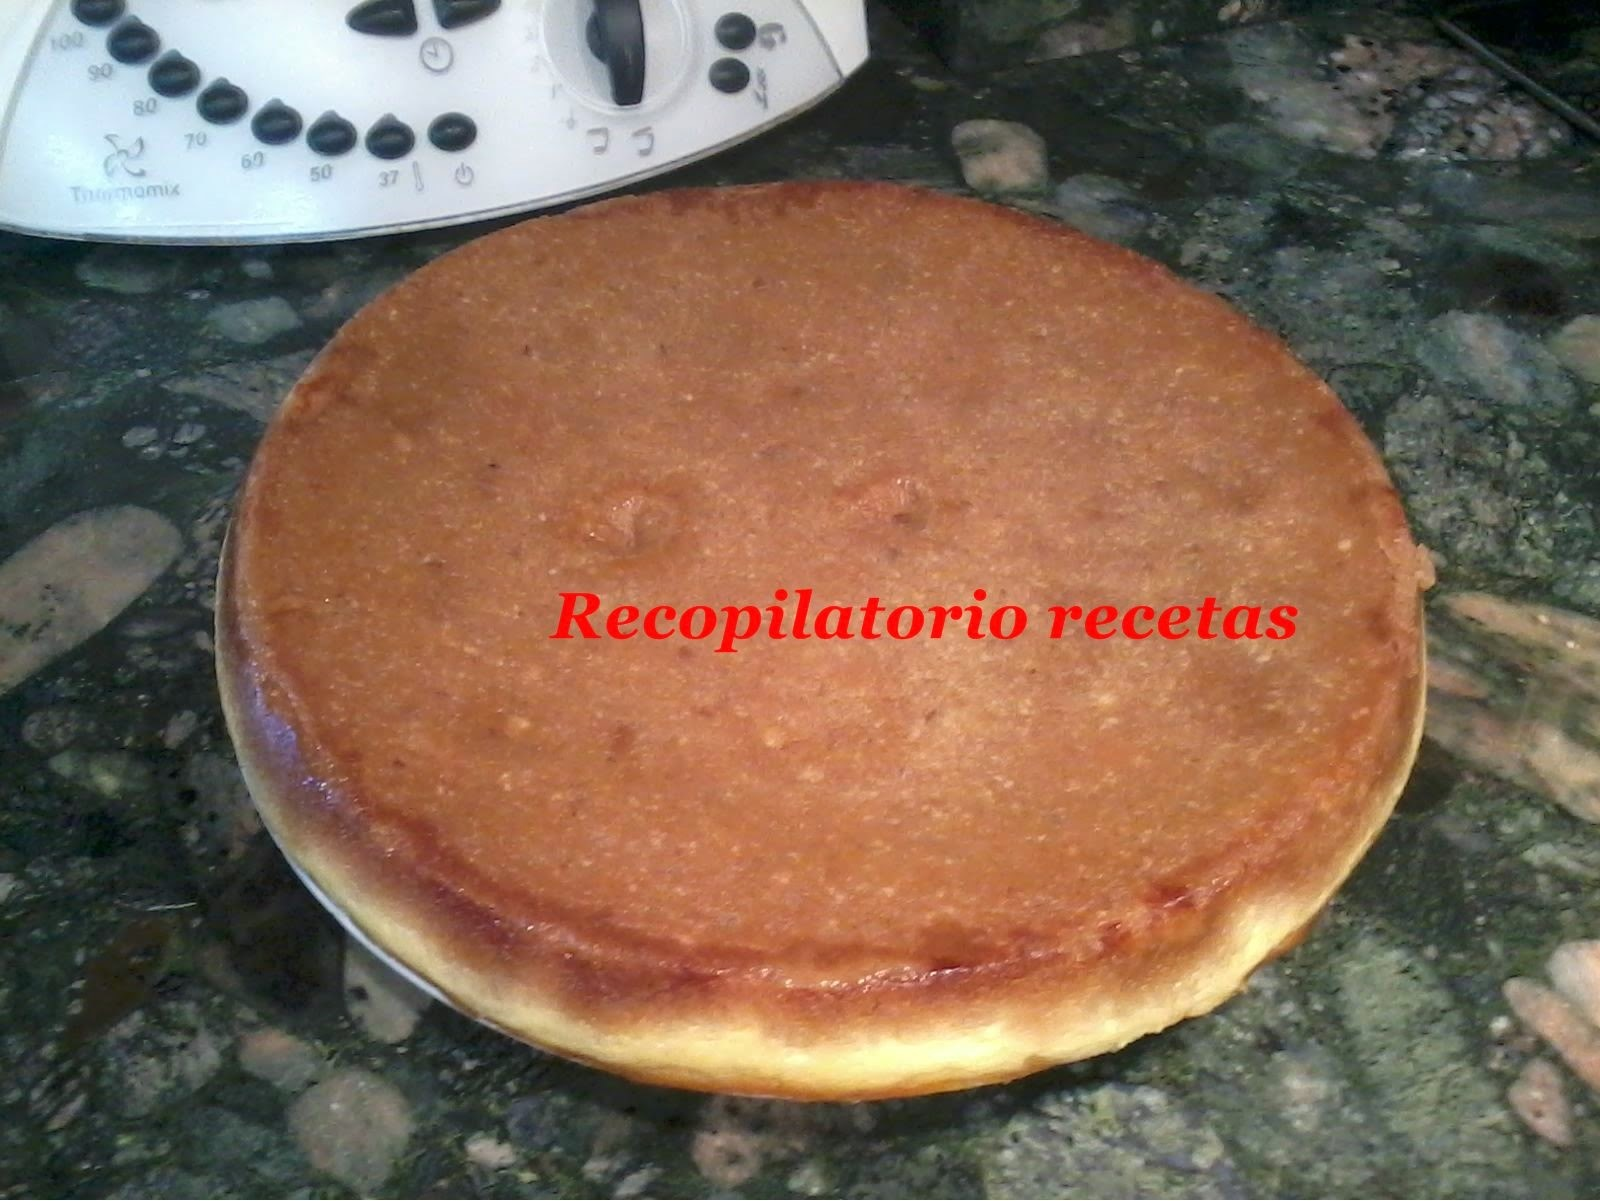 Base de tarta: galleta y almendra en thermomix